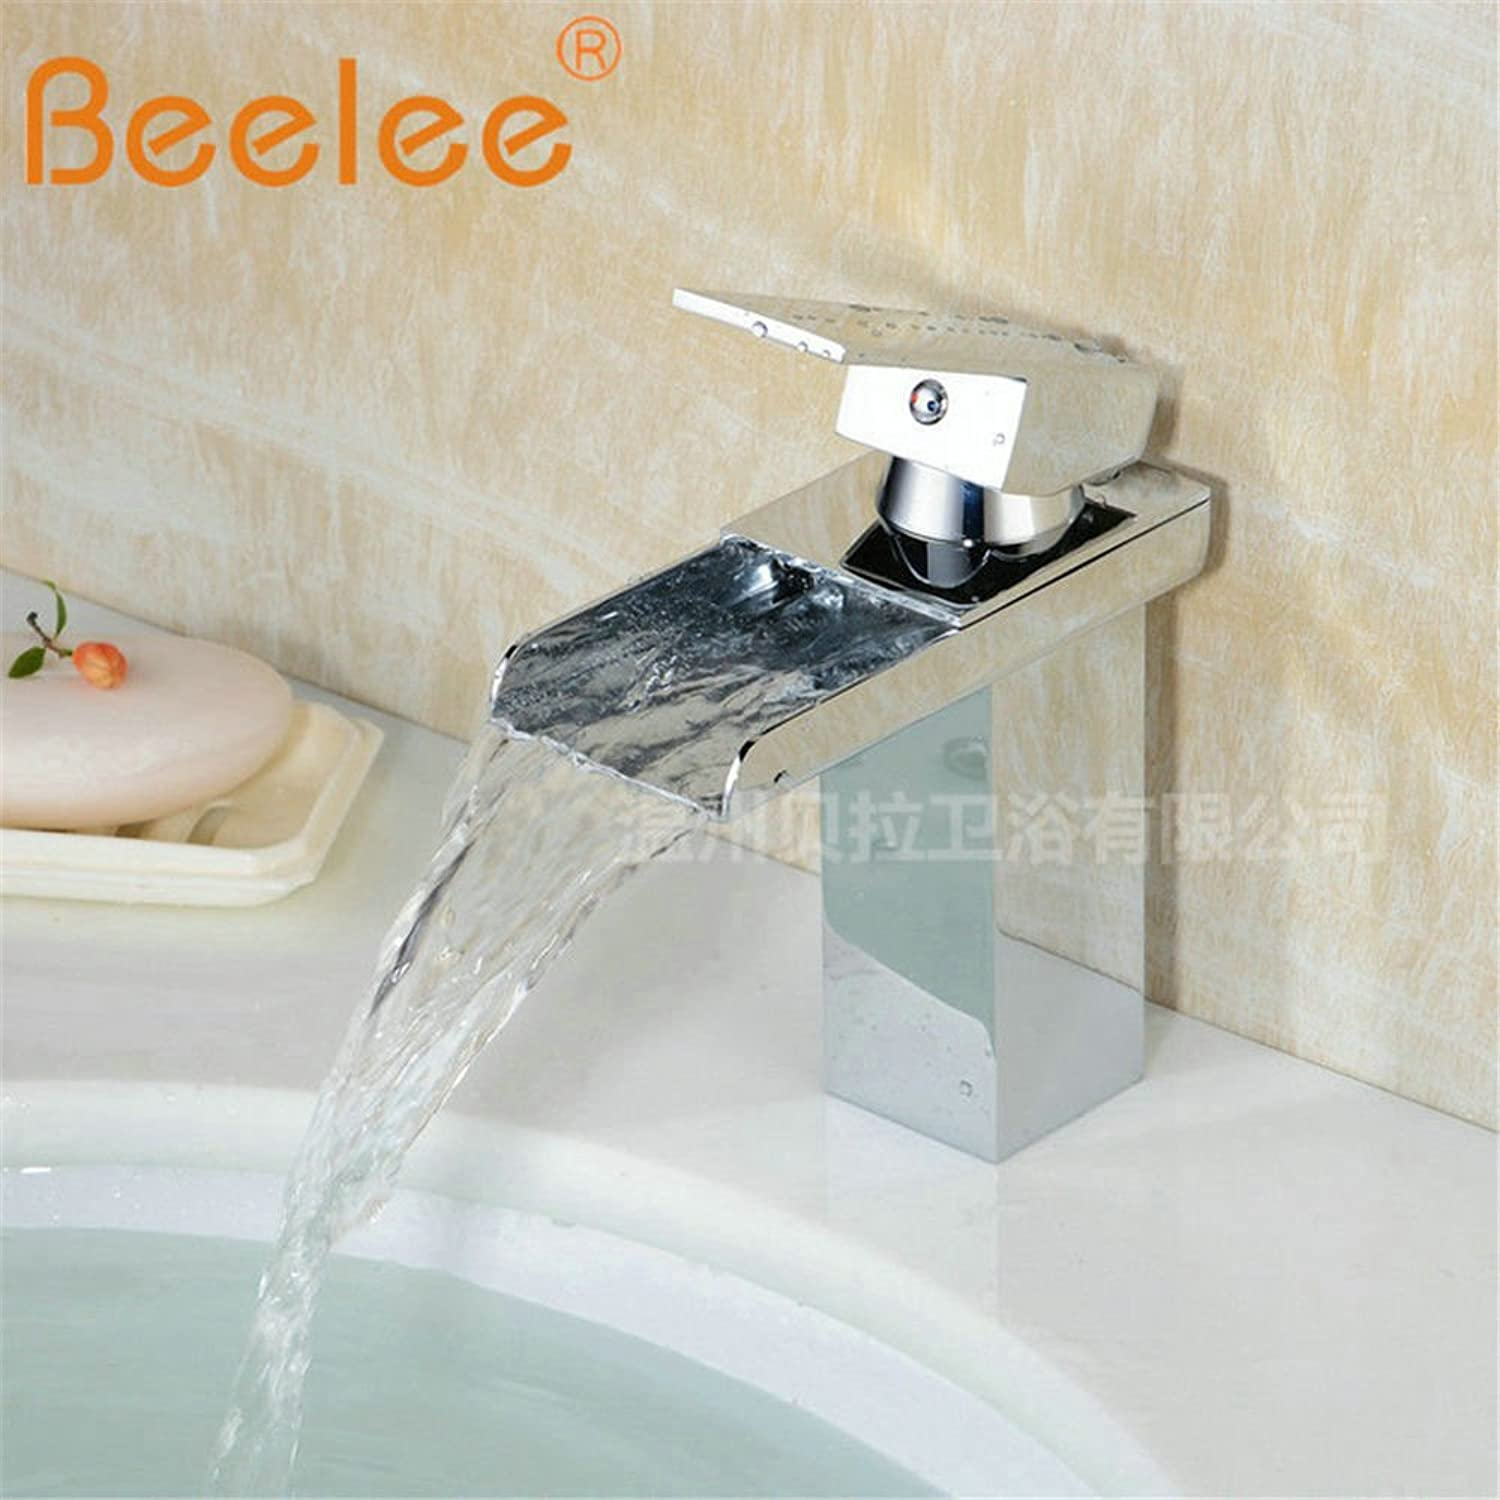 ETERNAL QUALITY Bathroom Sink Basin Tap Brass Mixer Tap Washroom Mixer Faucet Basin waterfall faucet hot and cold full copper single hole retro faucet sink Faucet Kitchen